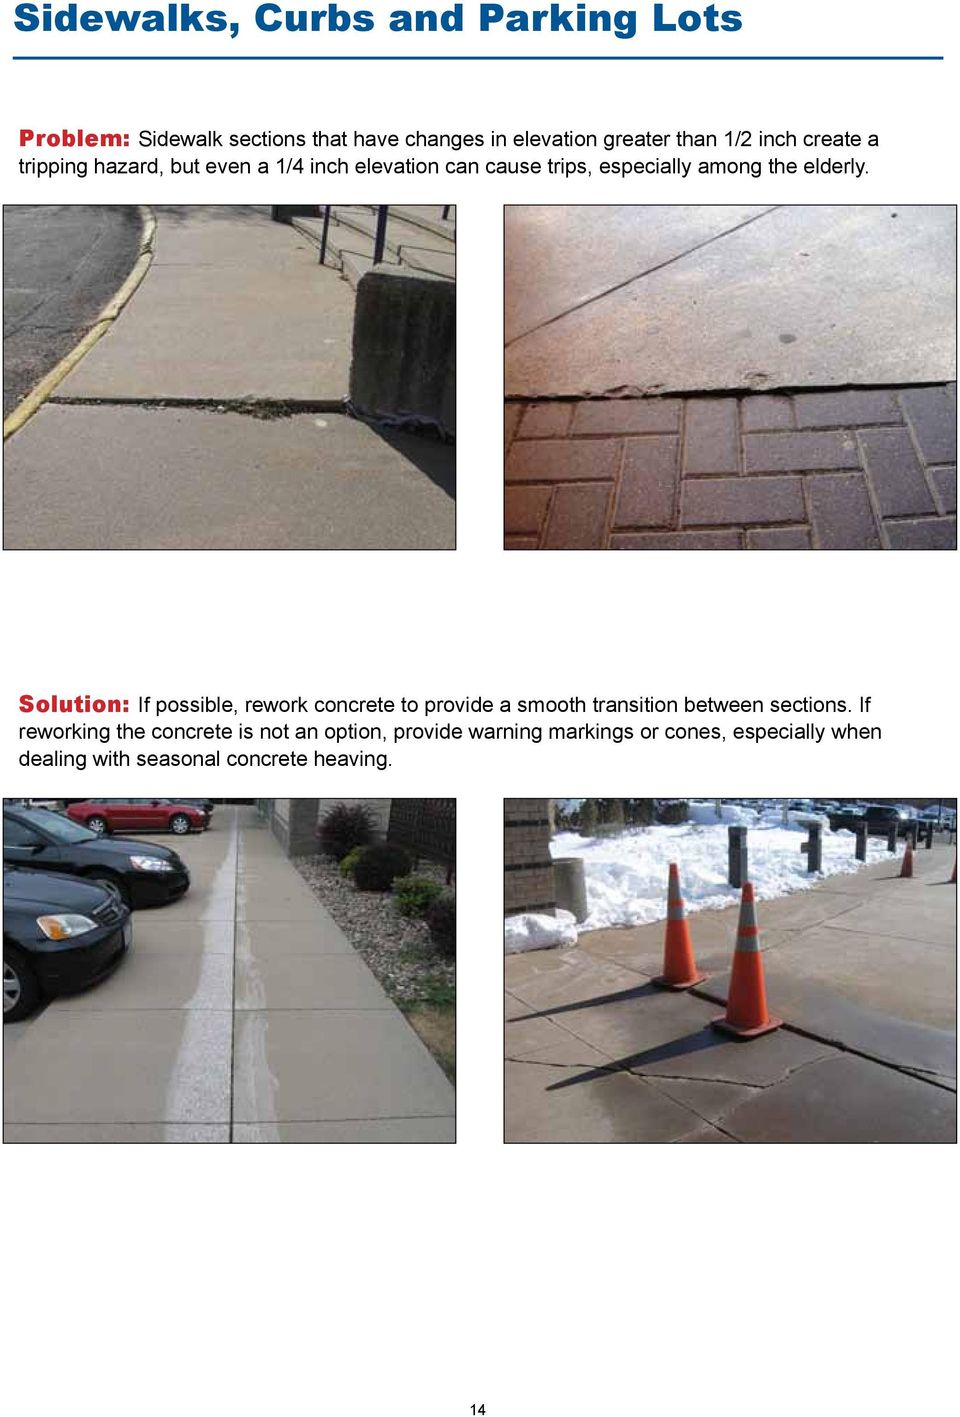 Solution: If possible, rework concrete to provide a smooth transition between sections.